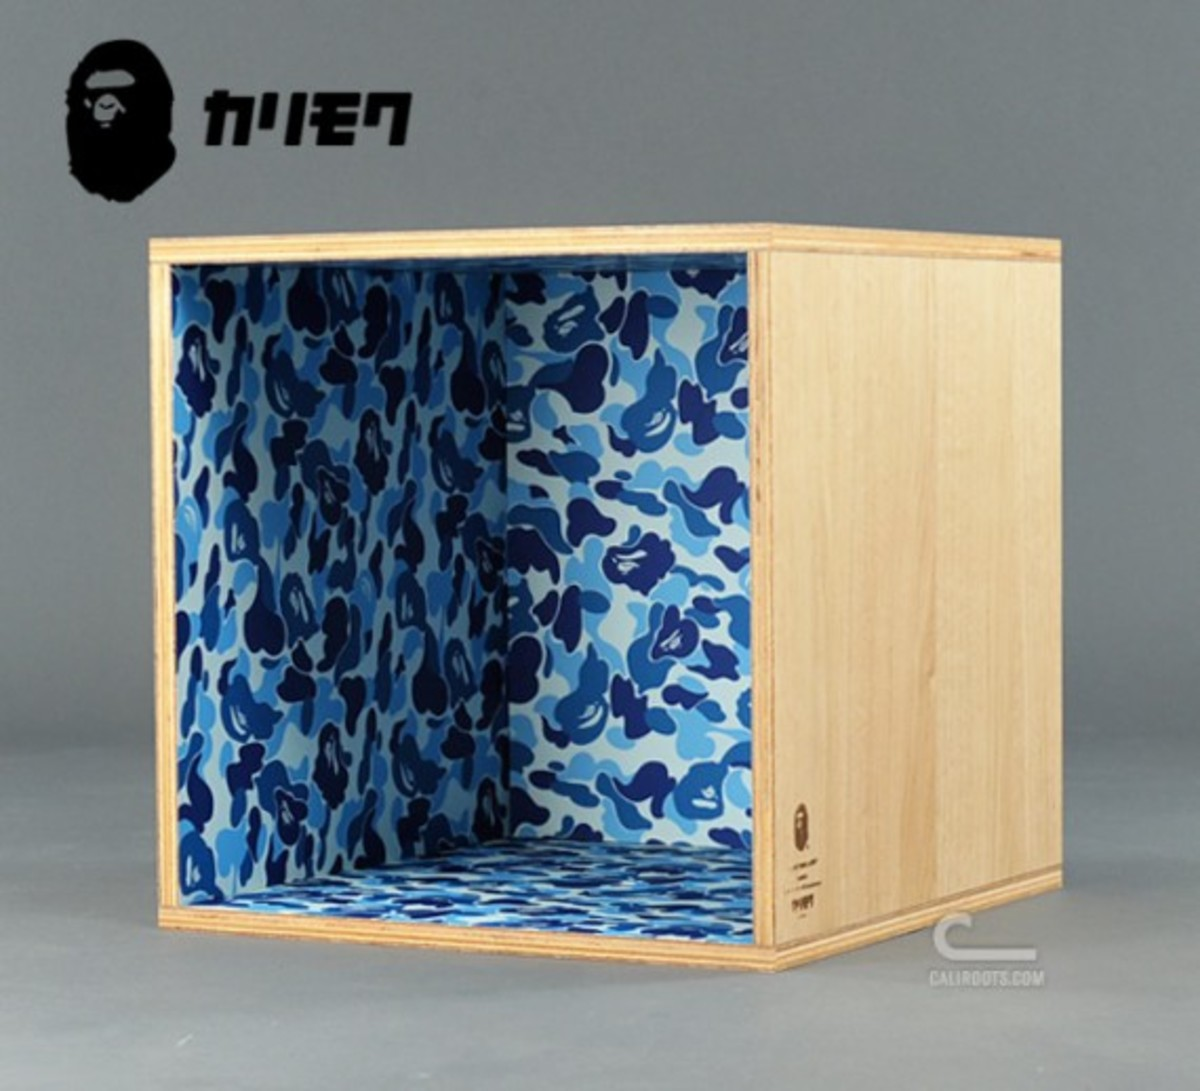 a-bathing-ape-medicom-toy-karimoku-bape-camo-furniture-10